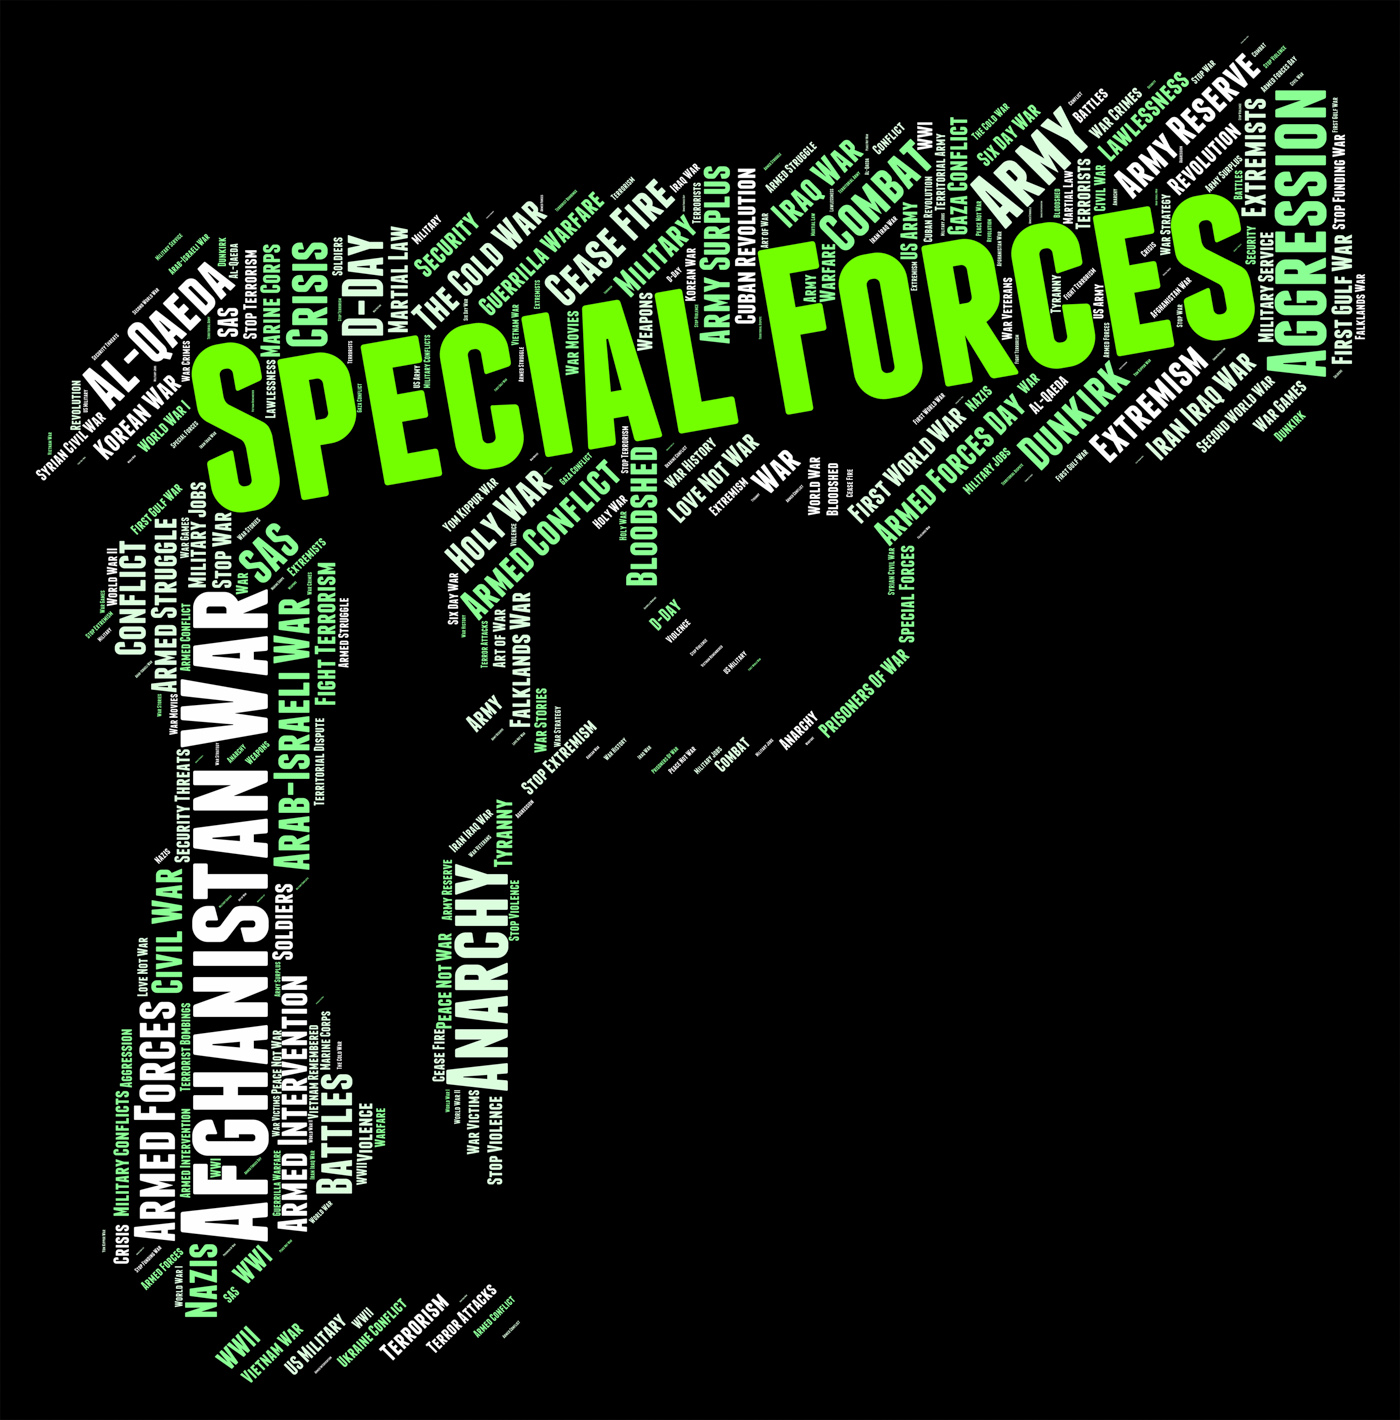 Special Forces Shows High Value And Direct, Airborne, Ops, Wordclouds, Wordcloud, HQ Photo